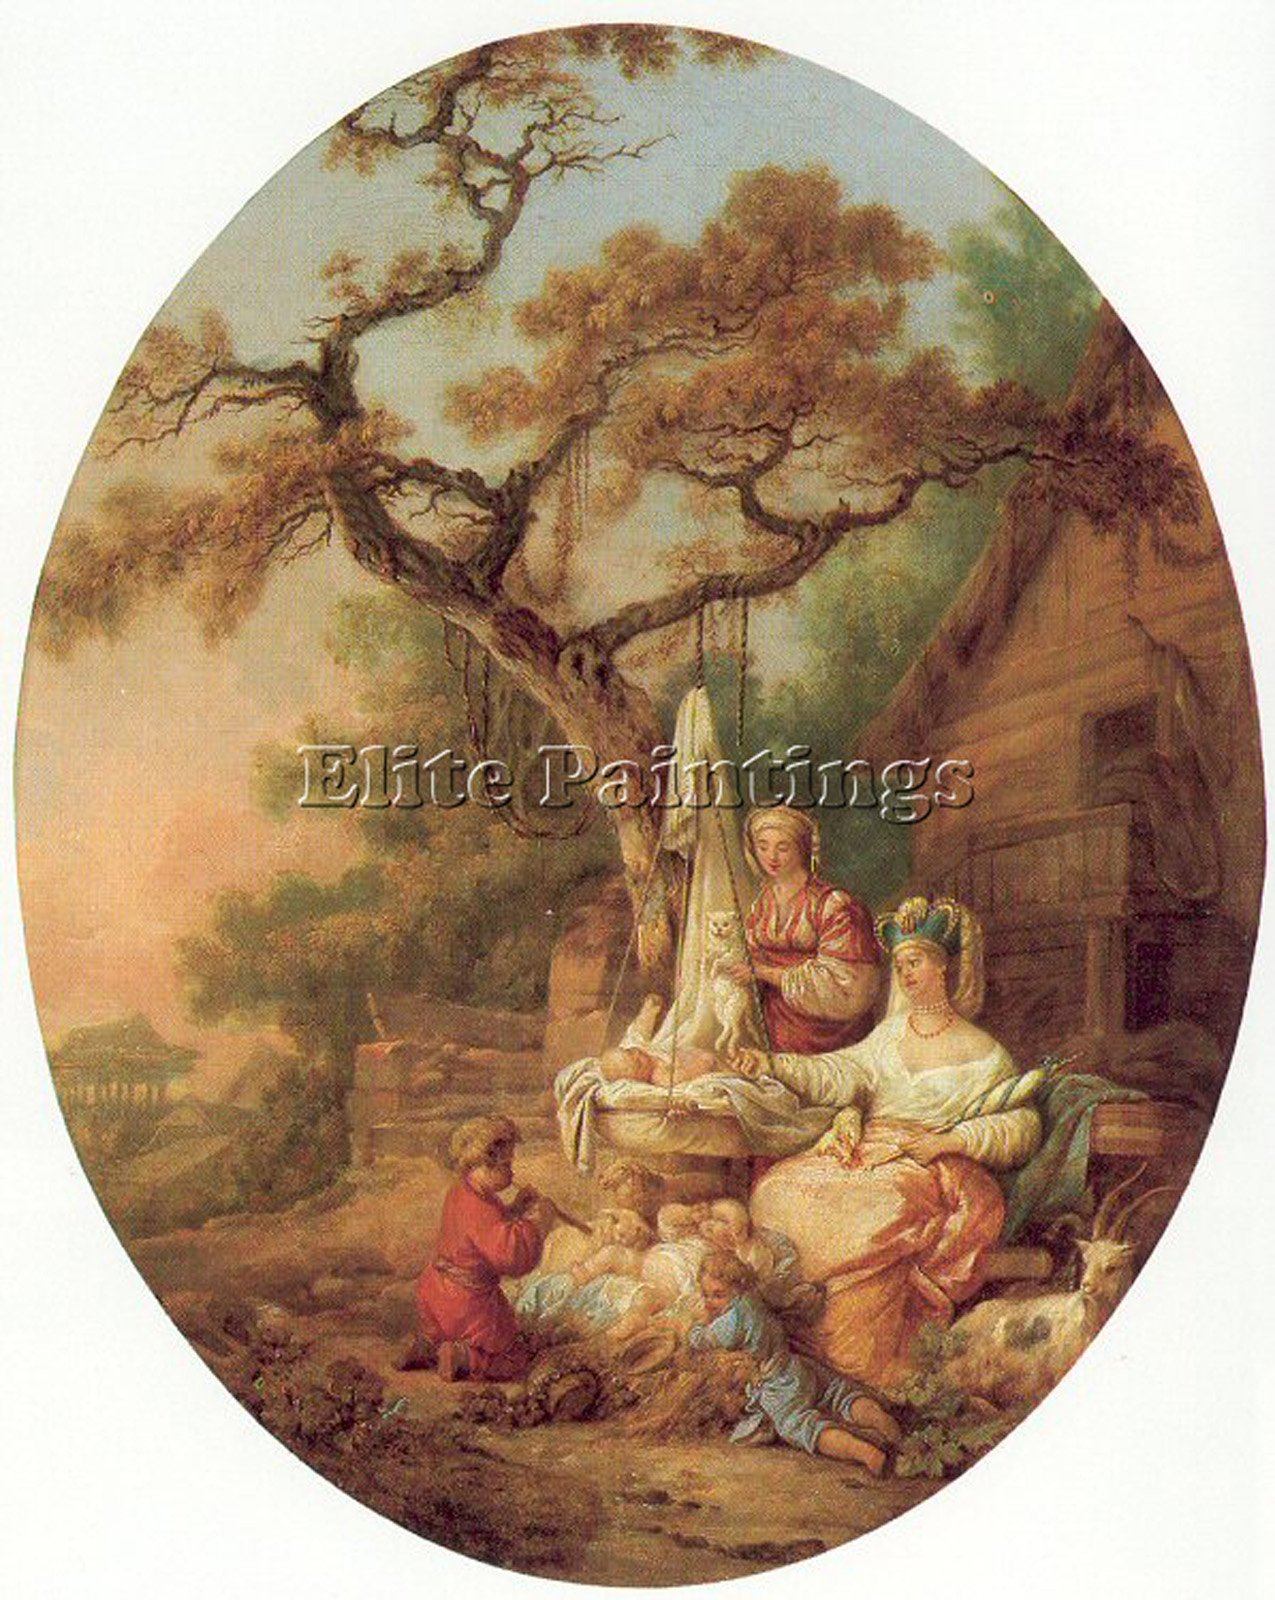 PRINCE JEAN BAPTISTE SCENE RUSSIAN EVERYDAY LIFE FRENCH 81 ARTIST PAINTING CANVA 48x40inch by Elite-Paintings